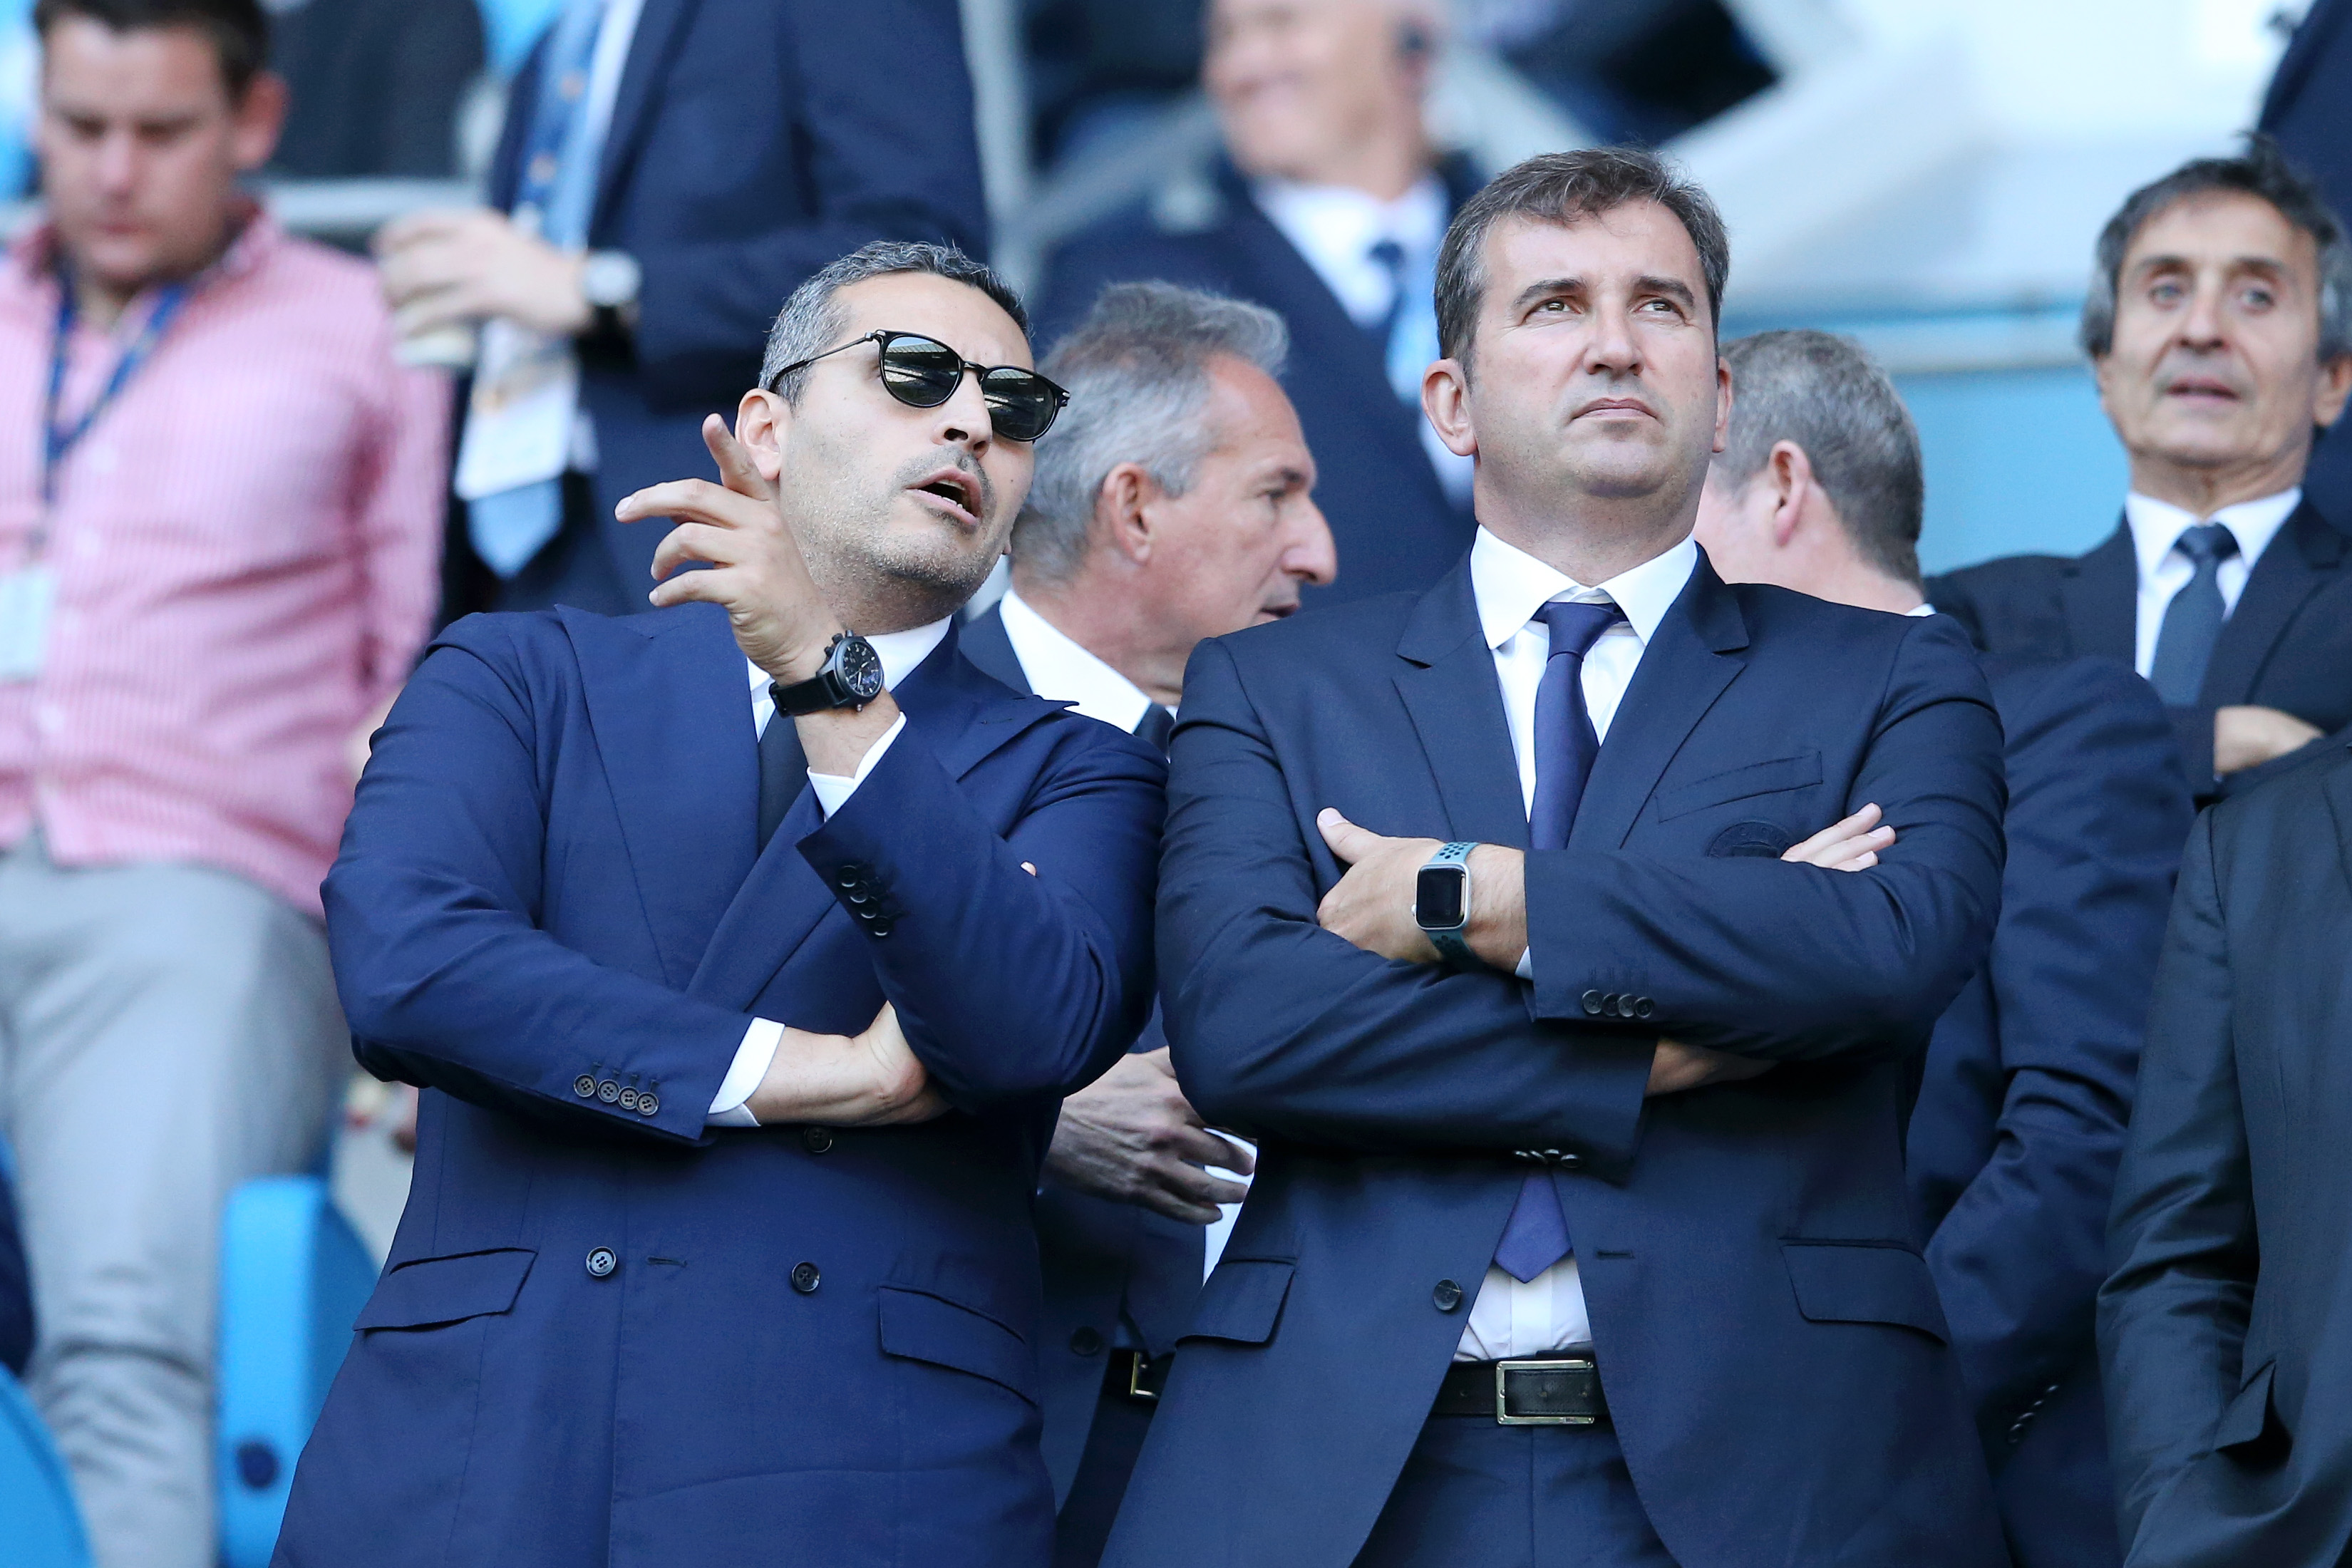 Khaldoon Al Mubarak, Chairman of Manchester City speaks to Ferran Soriano, Chief Executive Officer during the Premier League match between Manchester City and Watford FC at Etihad Stadium on September 21, 2019 in Manchester, United Kingdom.